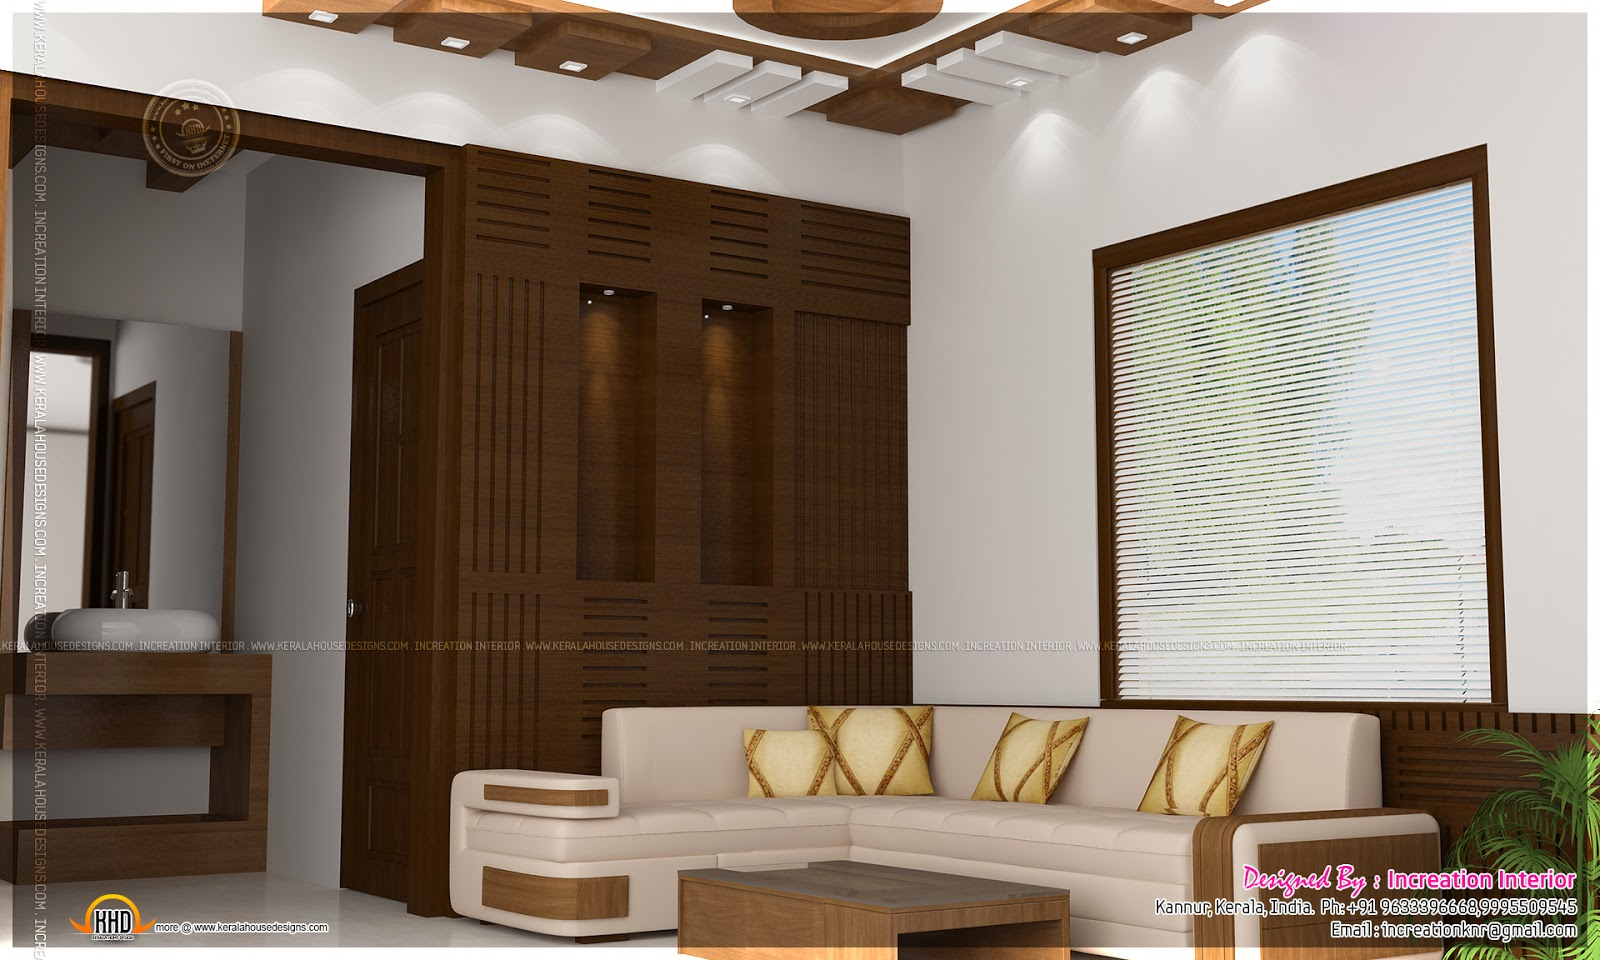 Interior design ideas by increation interior kerala for House designs interior